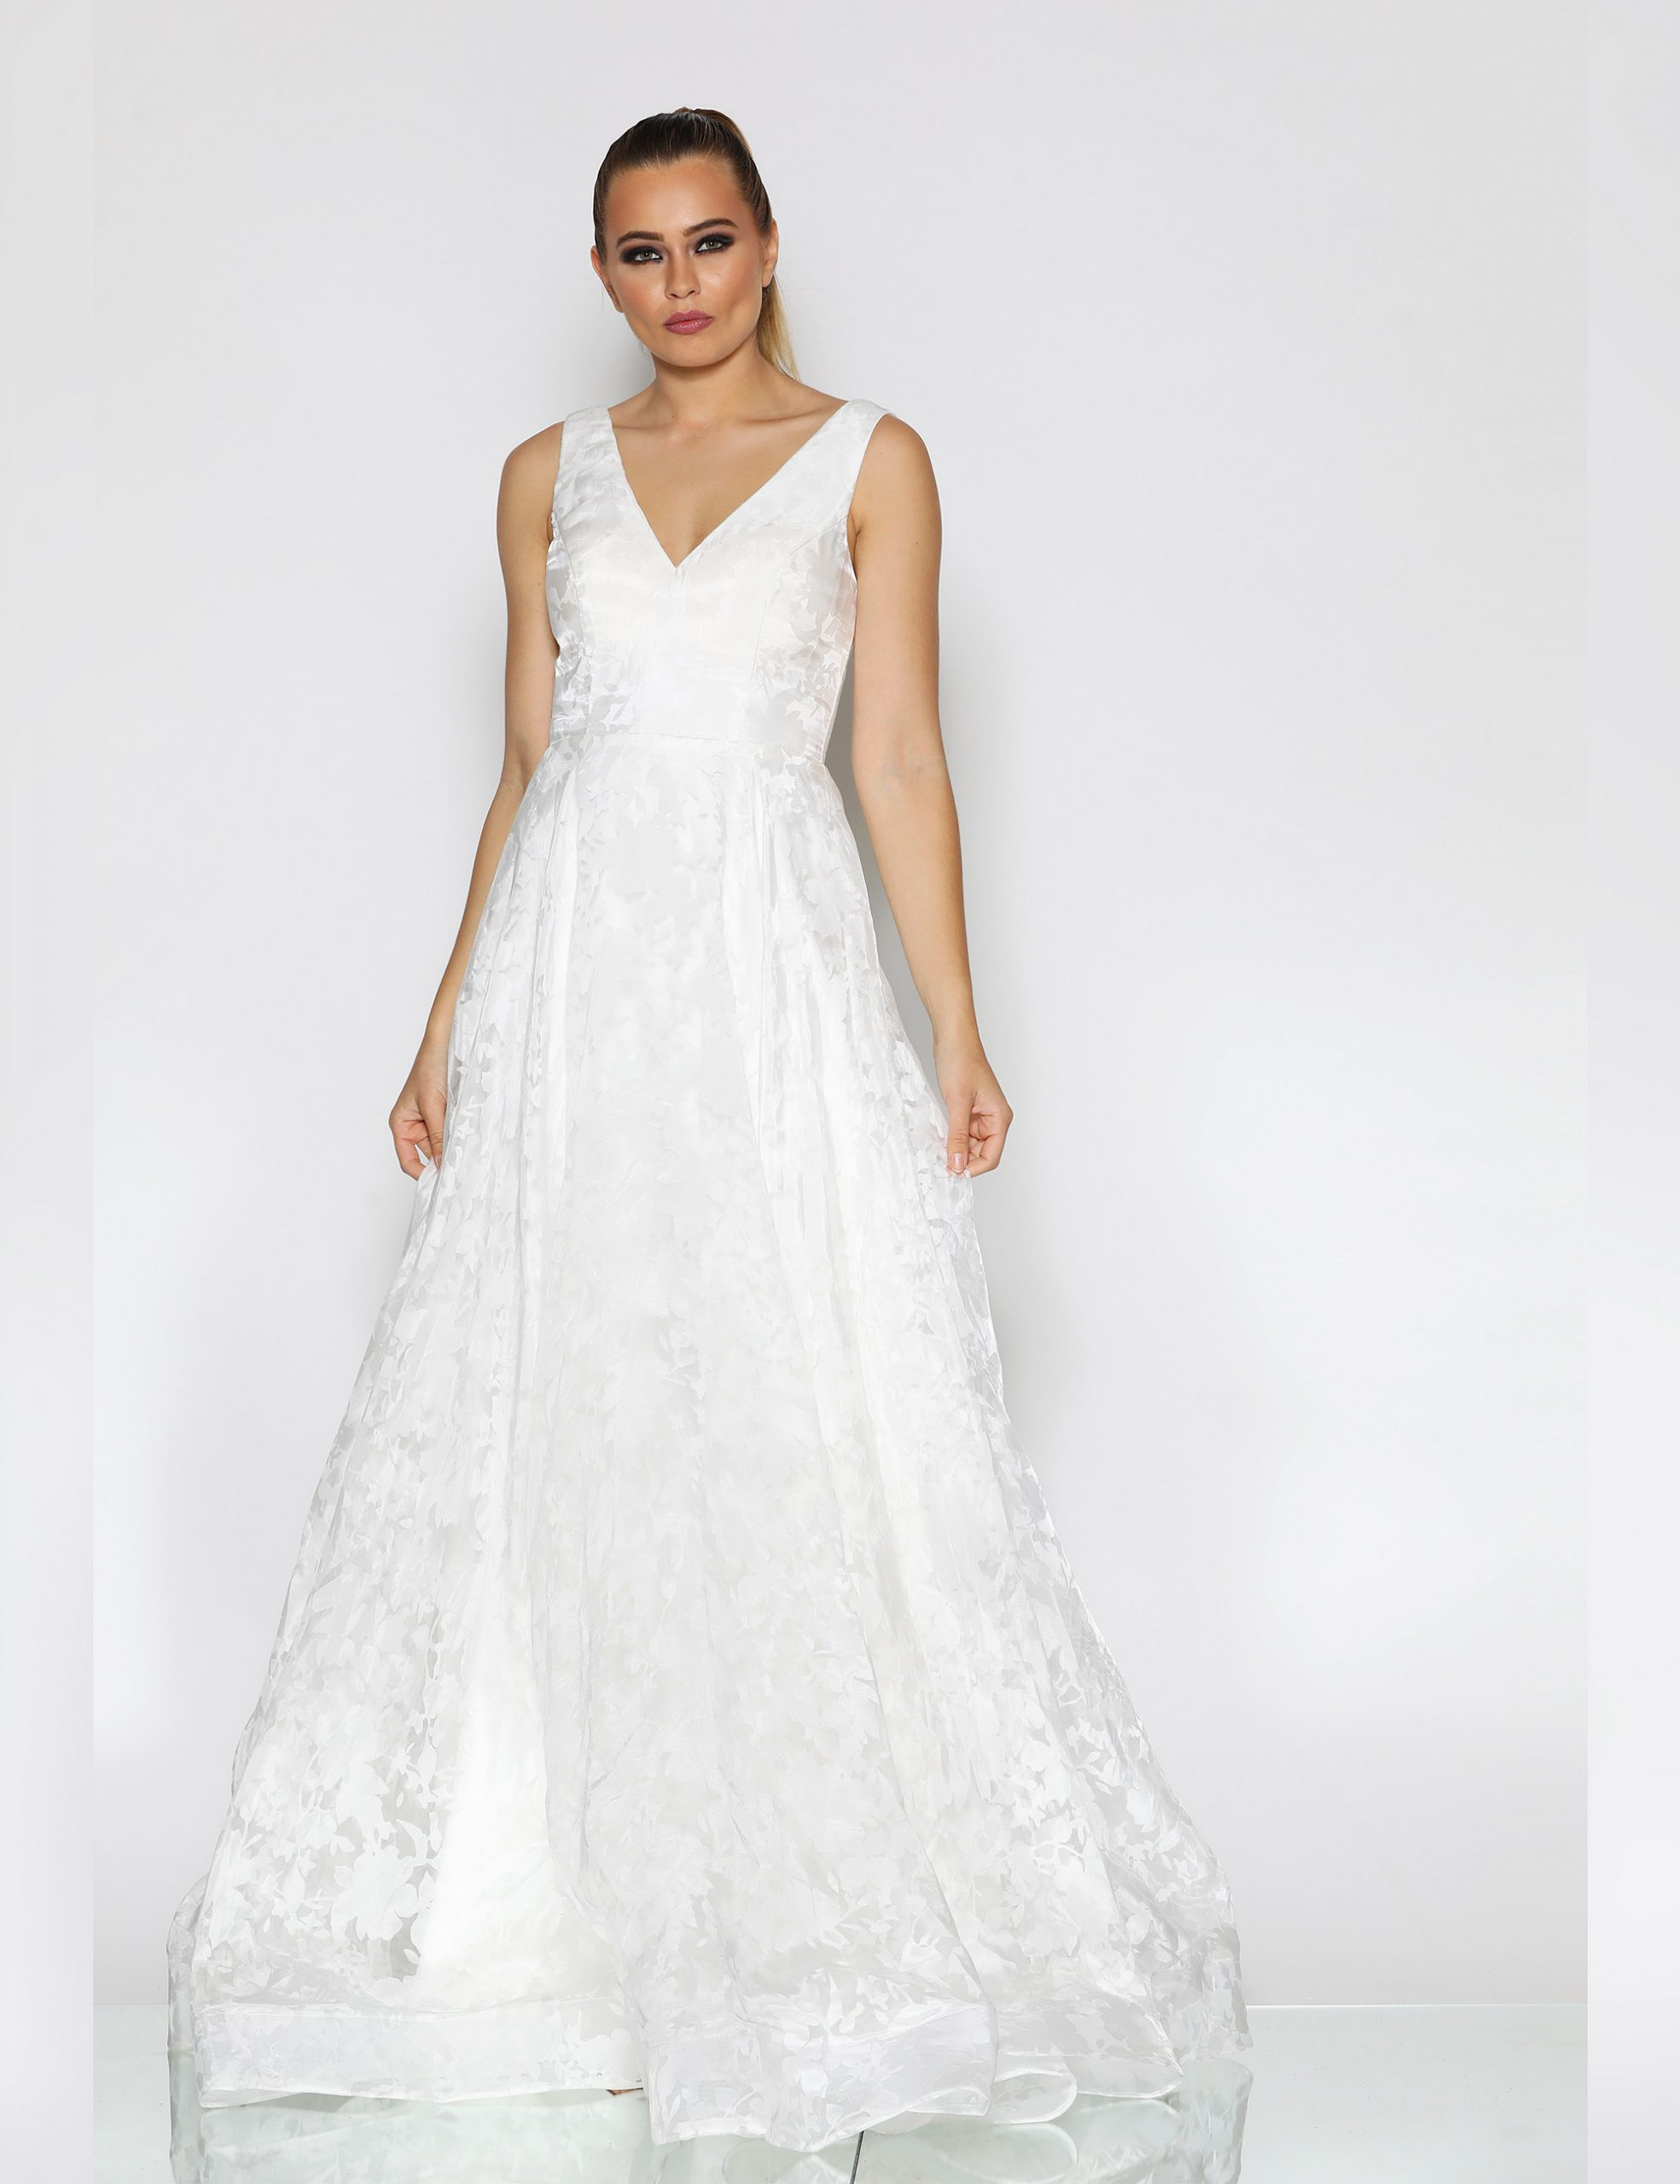 weddingdress26